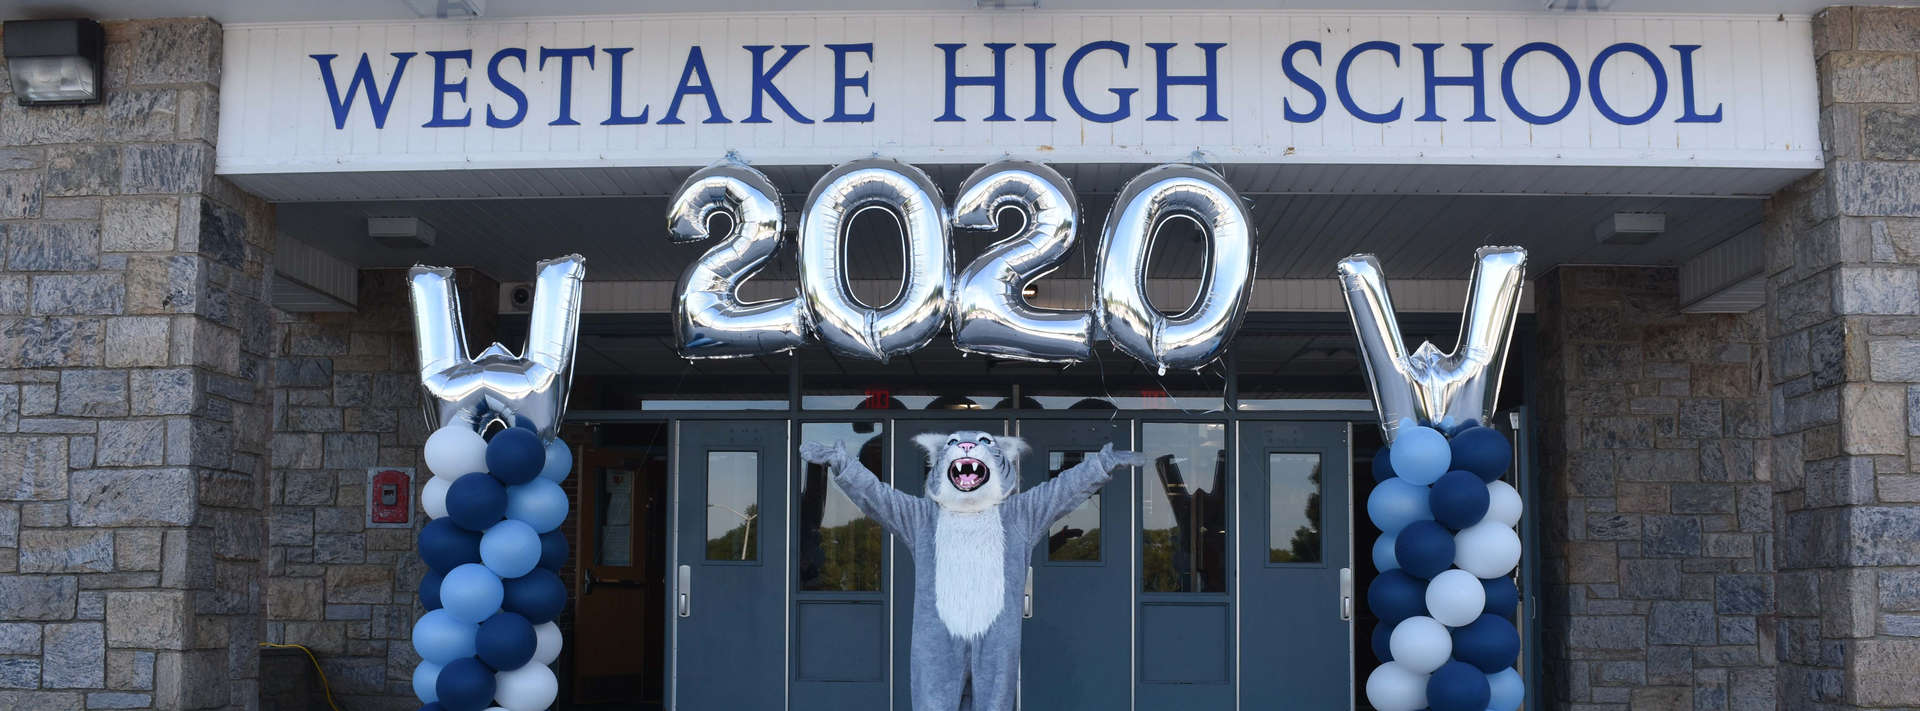 Wildcat mascot poses under 2020 balloons on front steps of WHS